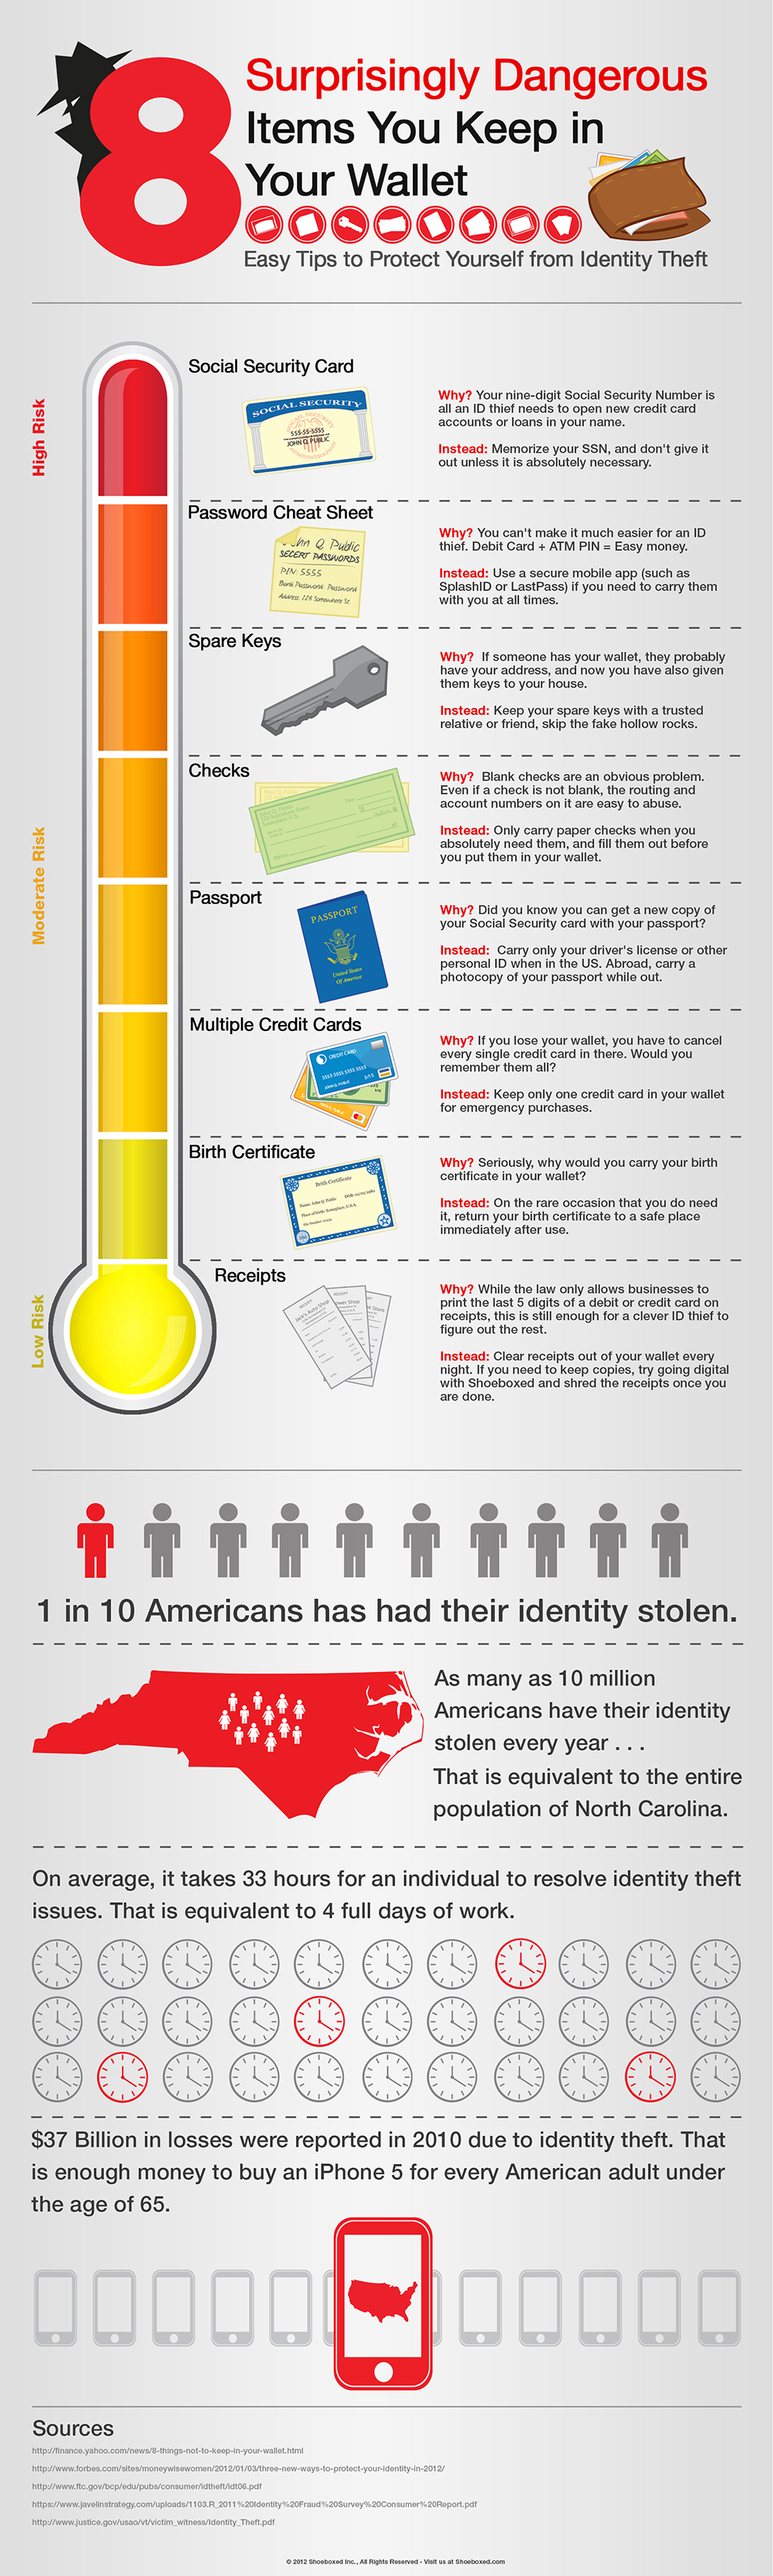 8-surprisingly-dangerous-items-you-keep-in-your-wallet_50ef0e04c58f6